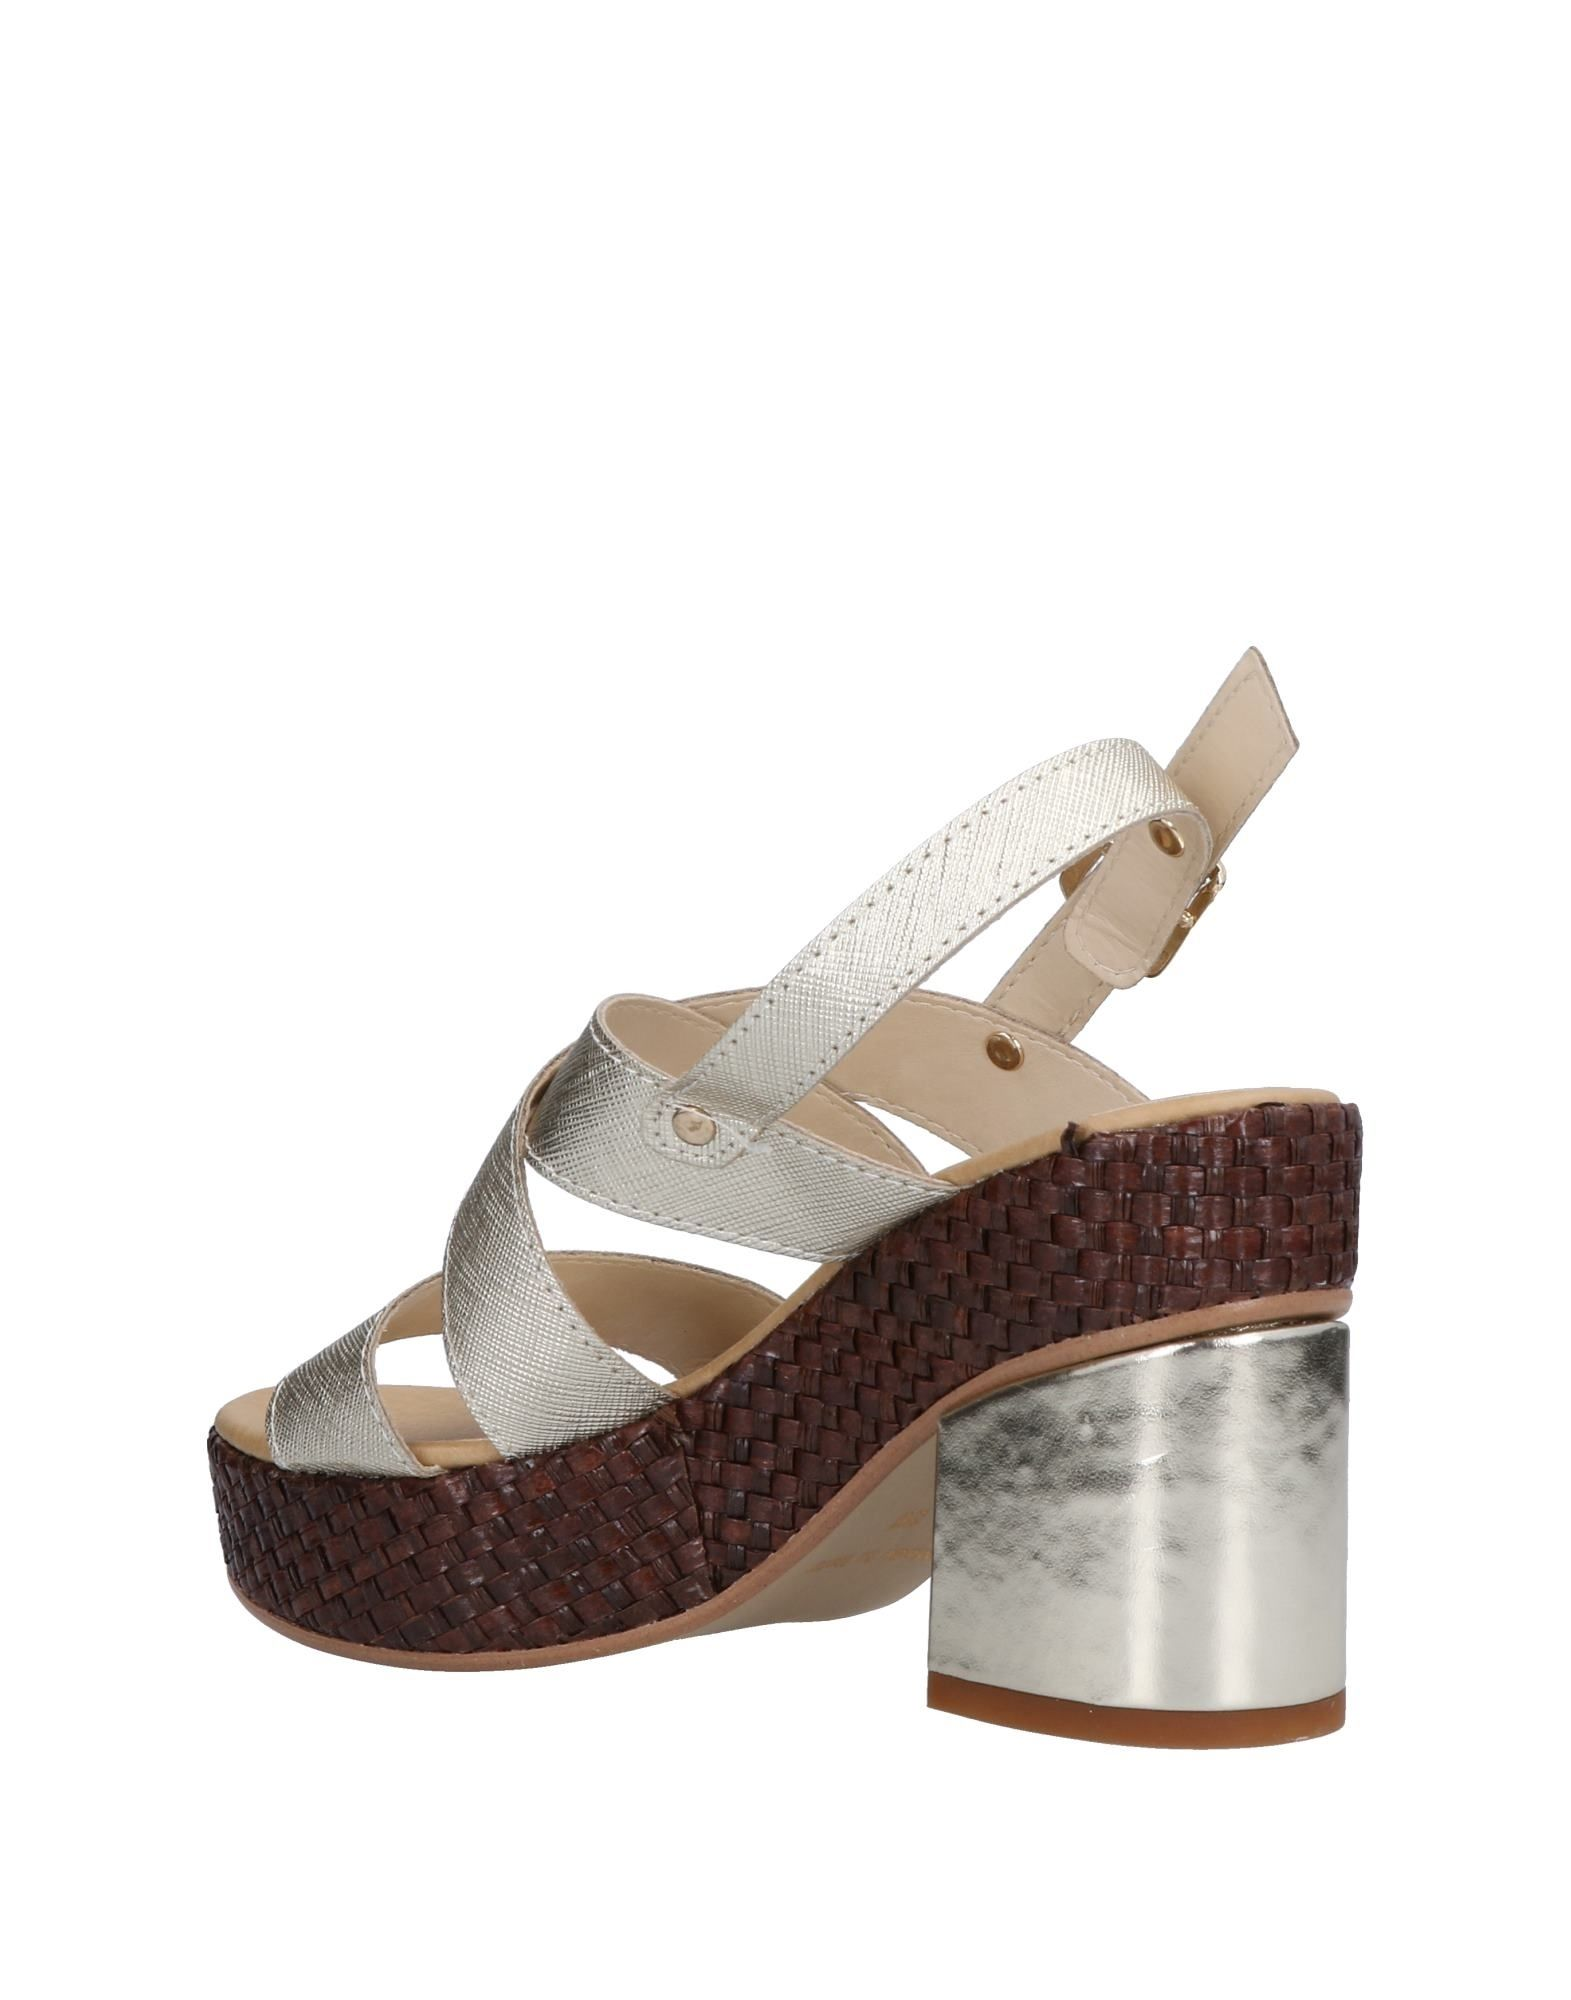 Sara Sandals Sandals Sandals - Women Sara Sandals online on  United Kingdom - 11507654PN 568ce3